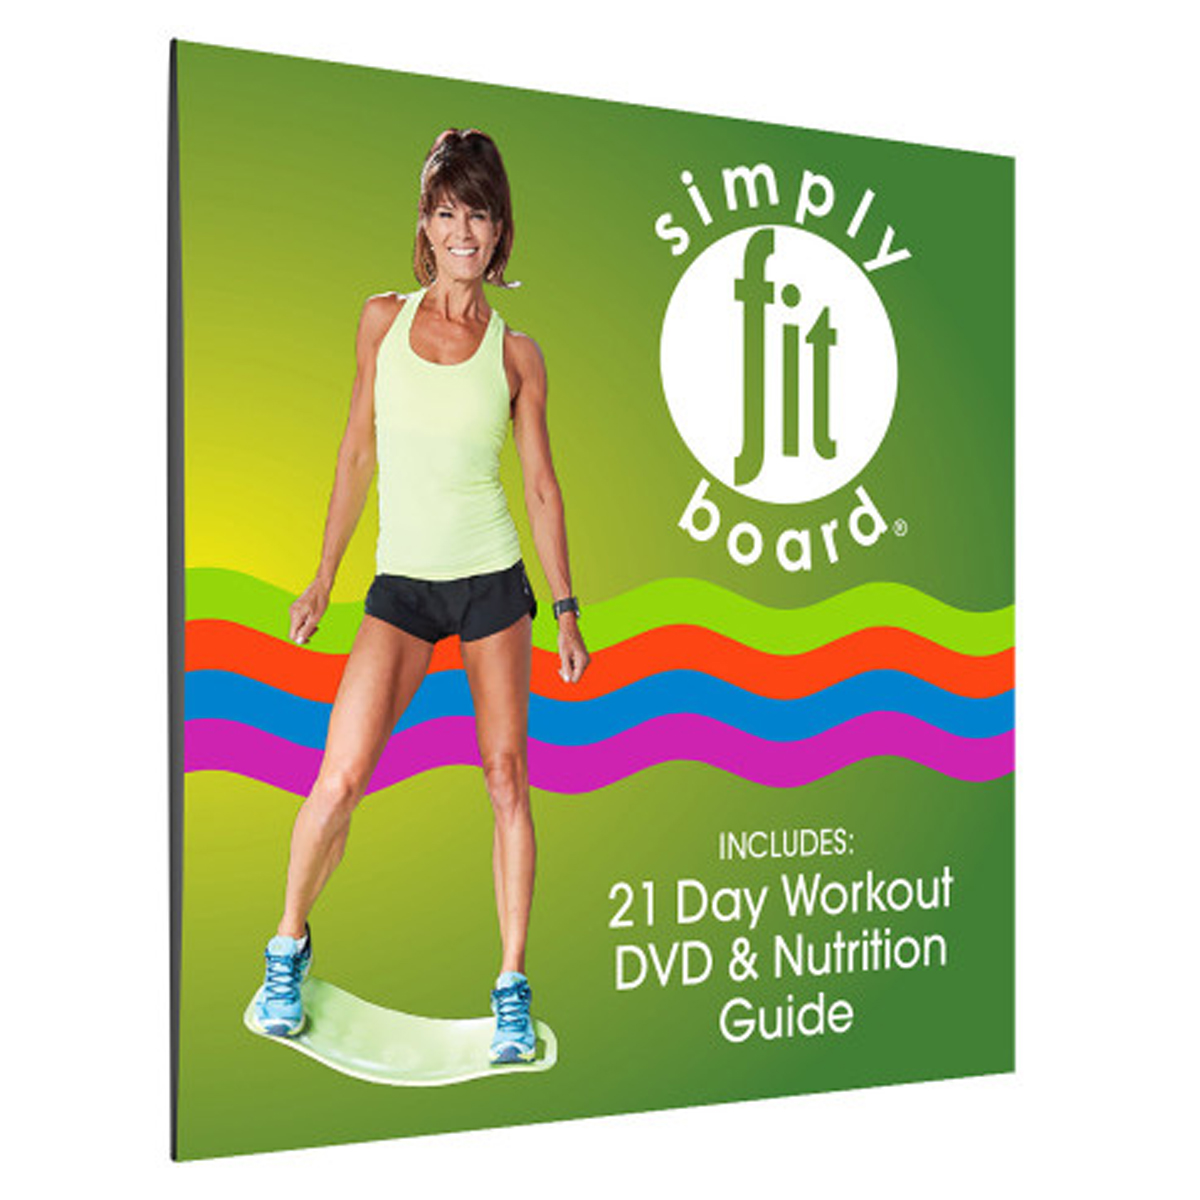 Simply Fit Board 21 Day Workout Challenge